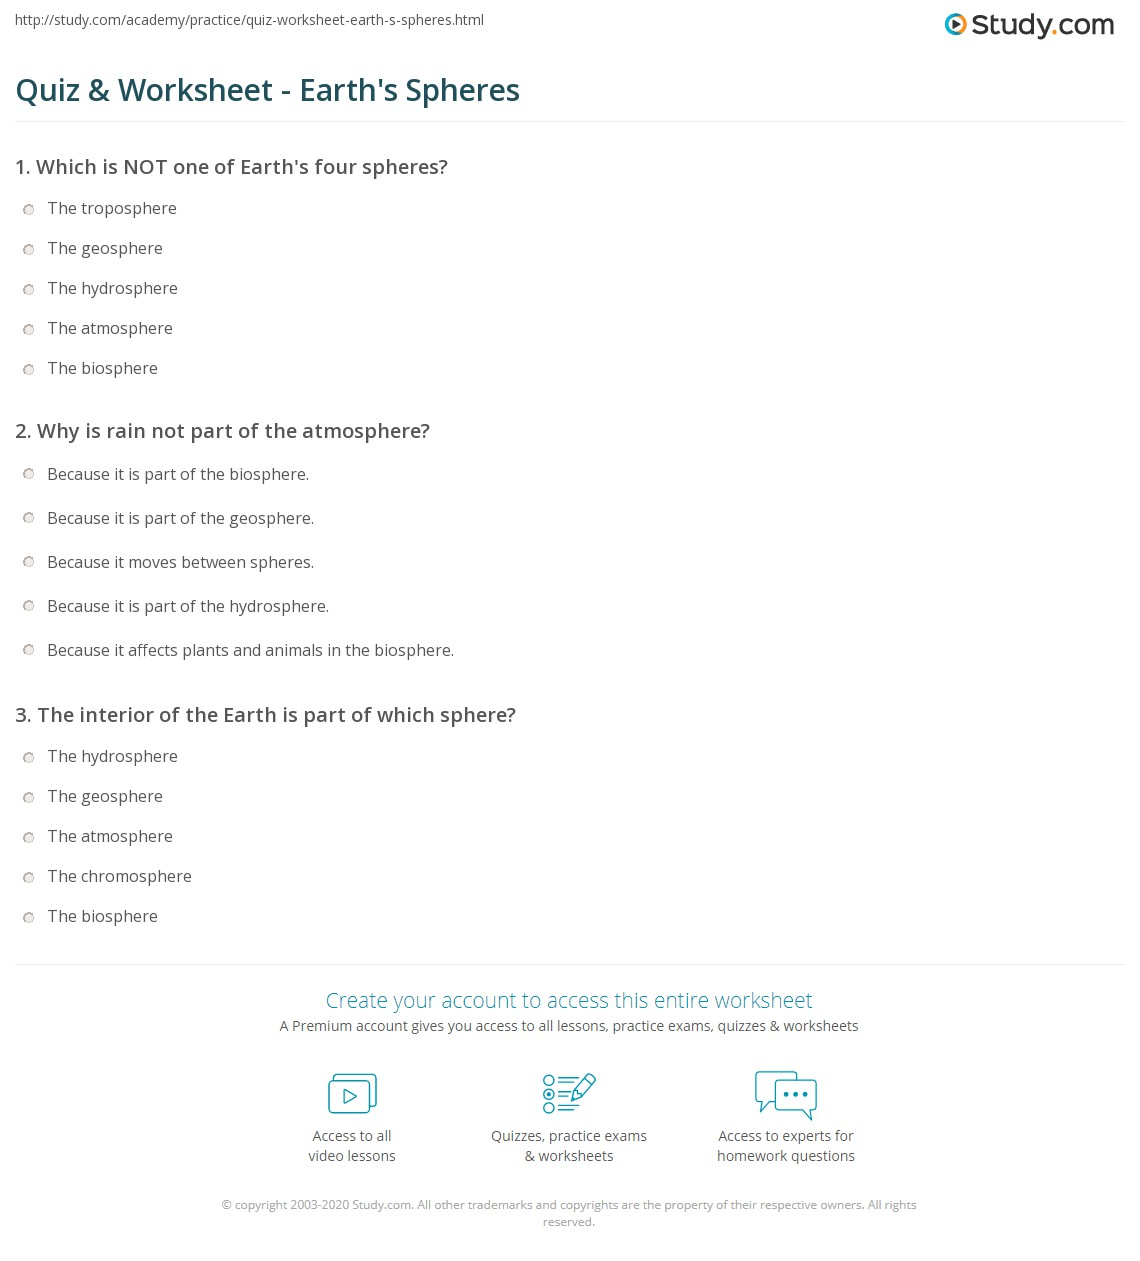 hight resolution of Quiz \u0026 Worksheet - Earth's Spheres   Study.com